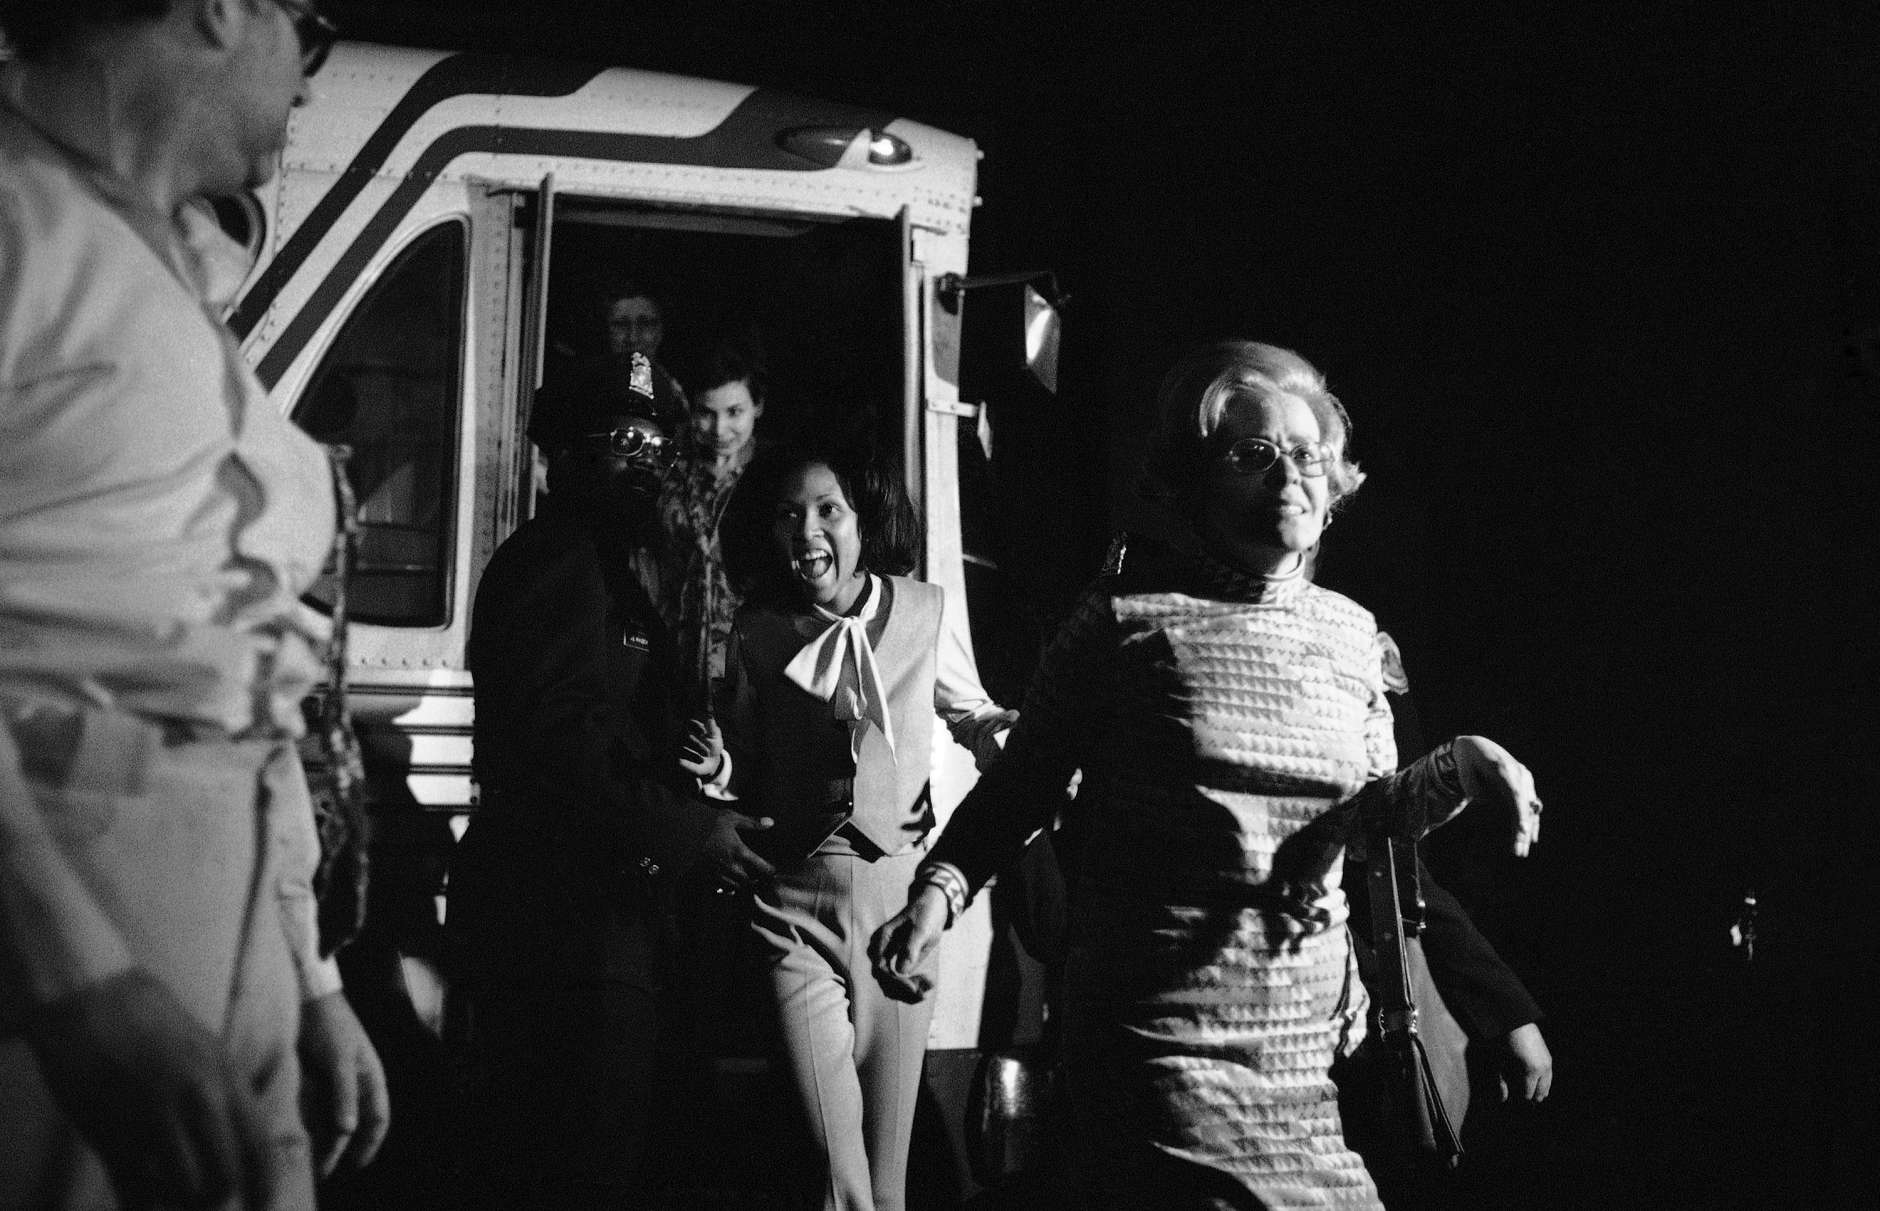 An unidentified woman jumps off a bus at the Foundry Methodist Church in Washington, D.C., on Friday, March 11, 1977 following her release by gunmen. Twelve black Hanafi Moslems held some 134 hostages in three Washington buildings for 38 hours before surrendering to police on Friday. (AP Photo)